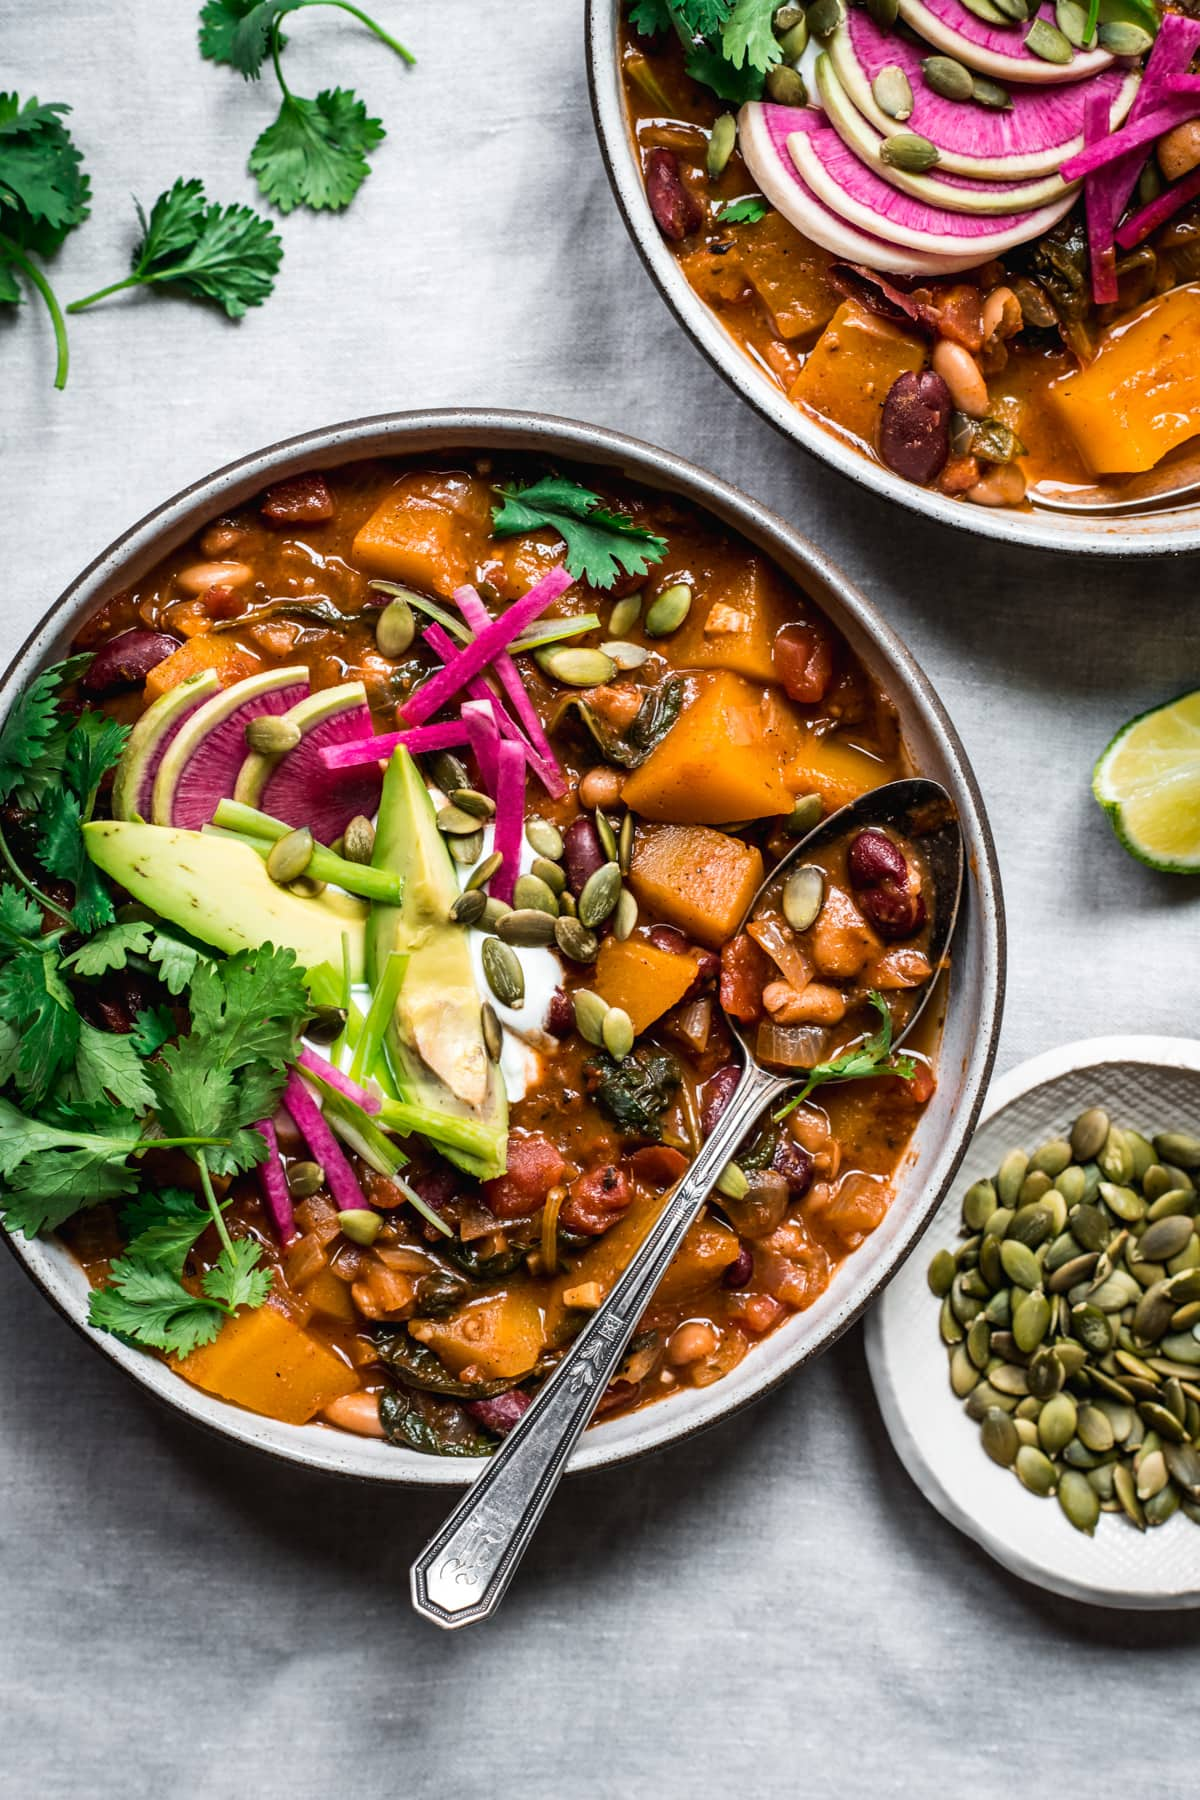 overhead view of bowl of vegan pumpkin chili topped with avocado slices, sour cream, pumpkin seeds and watermelon radish.